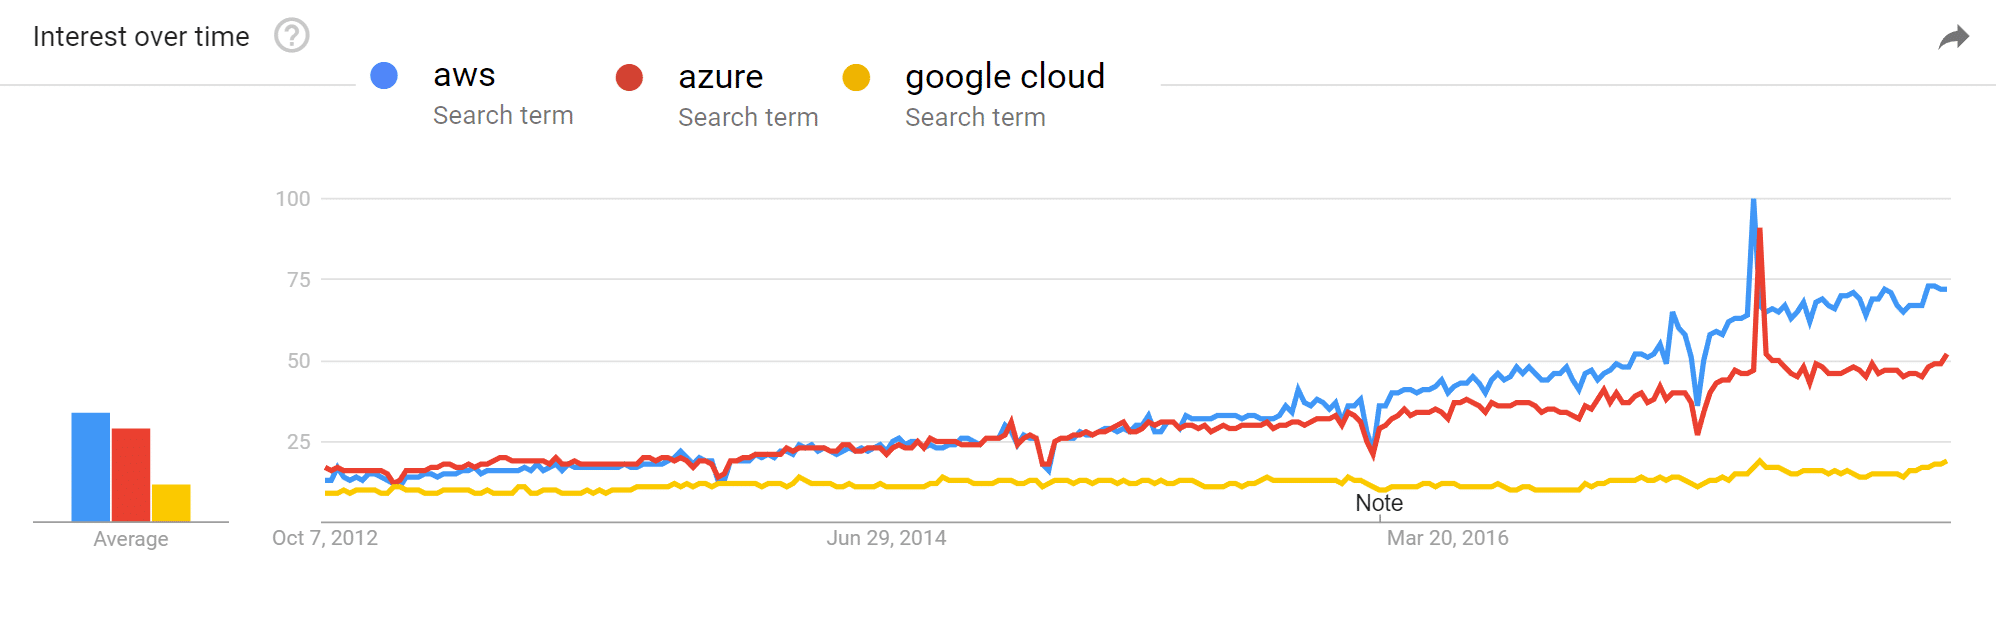 Google trends on cloud computing providers